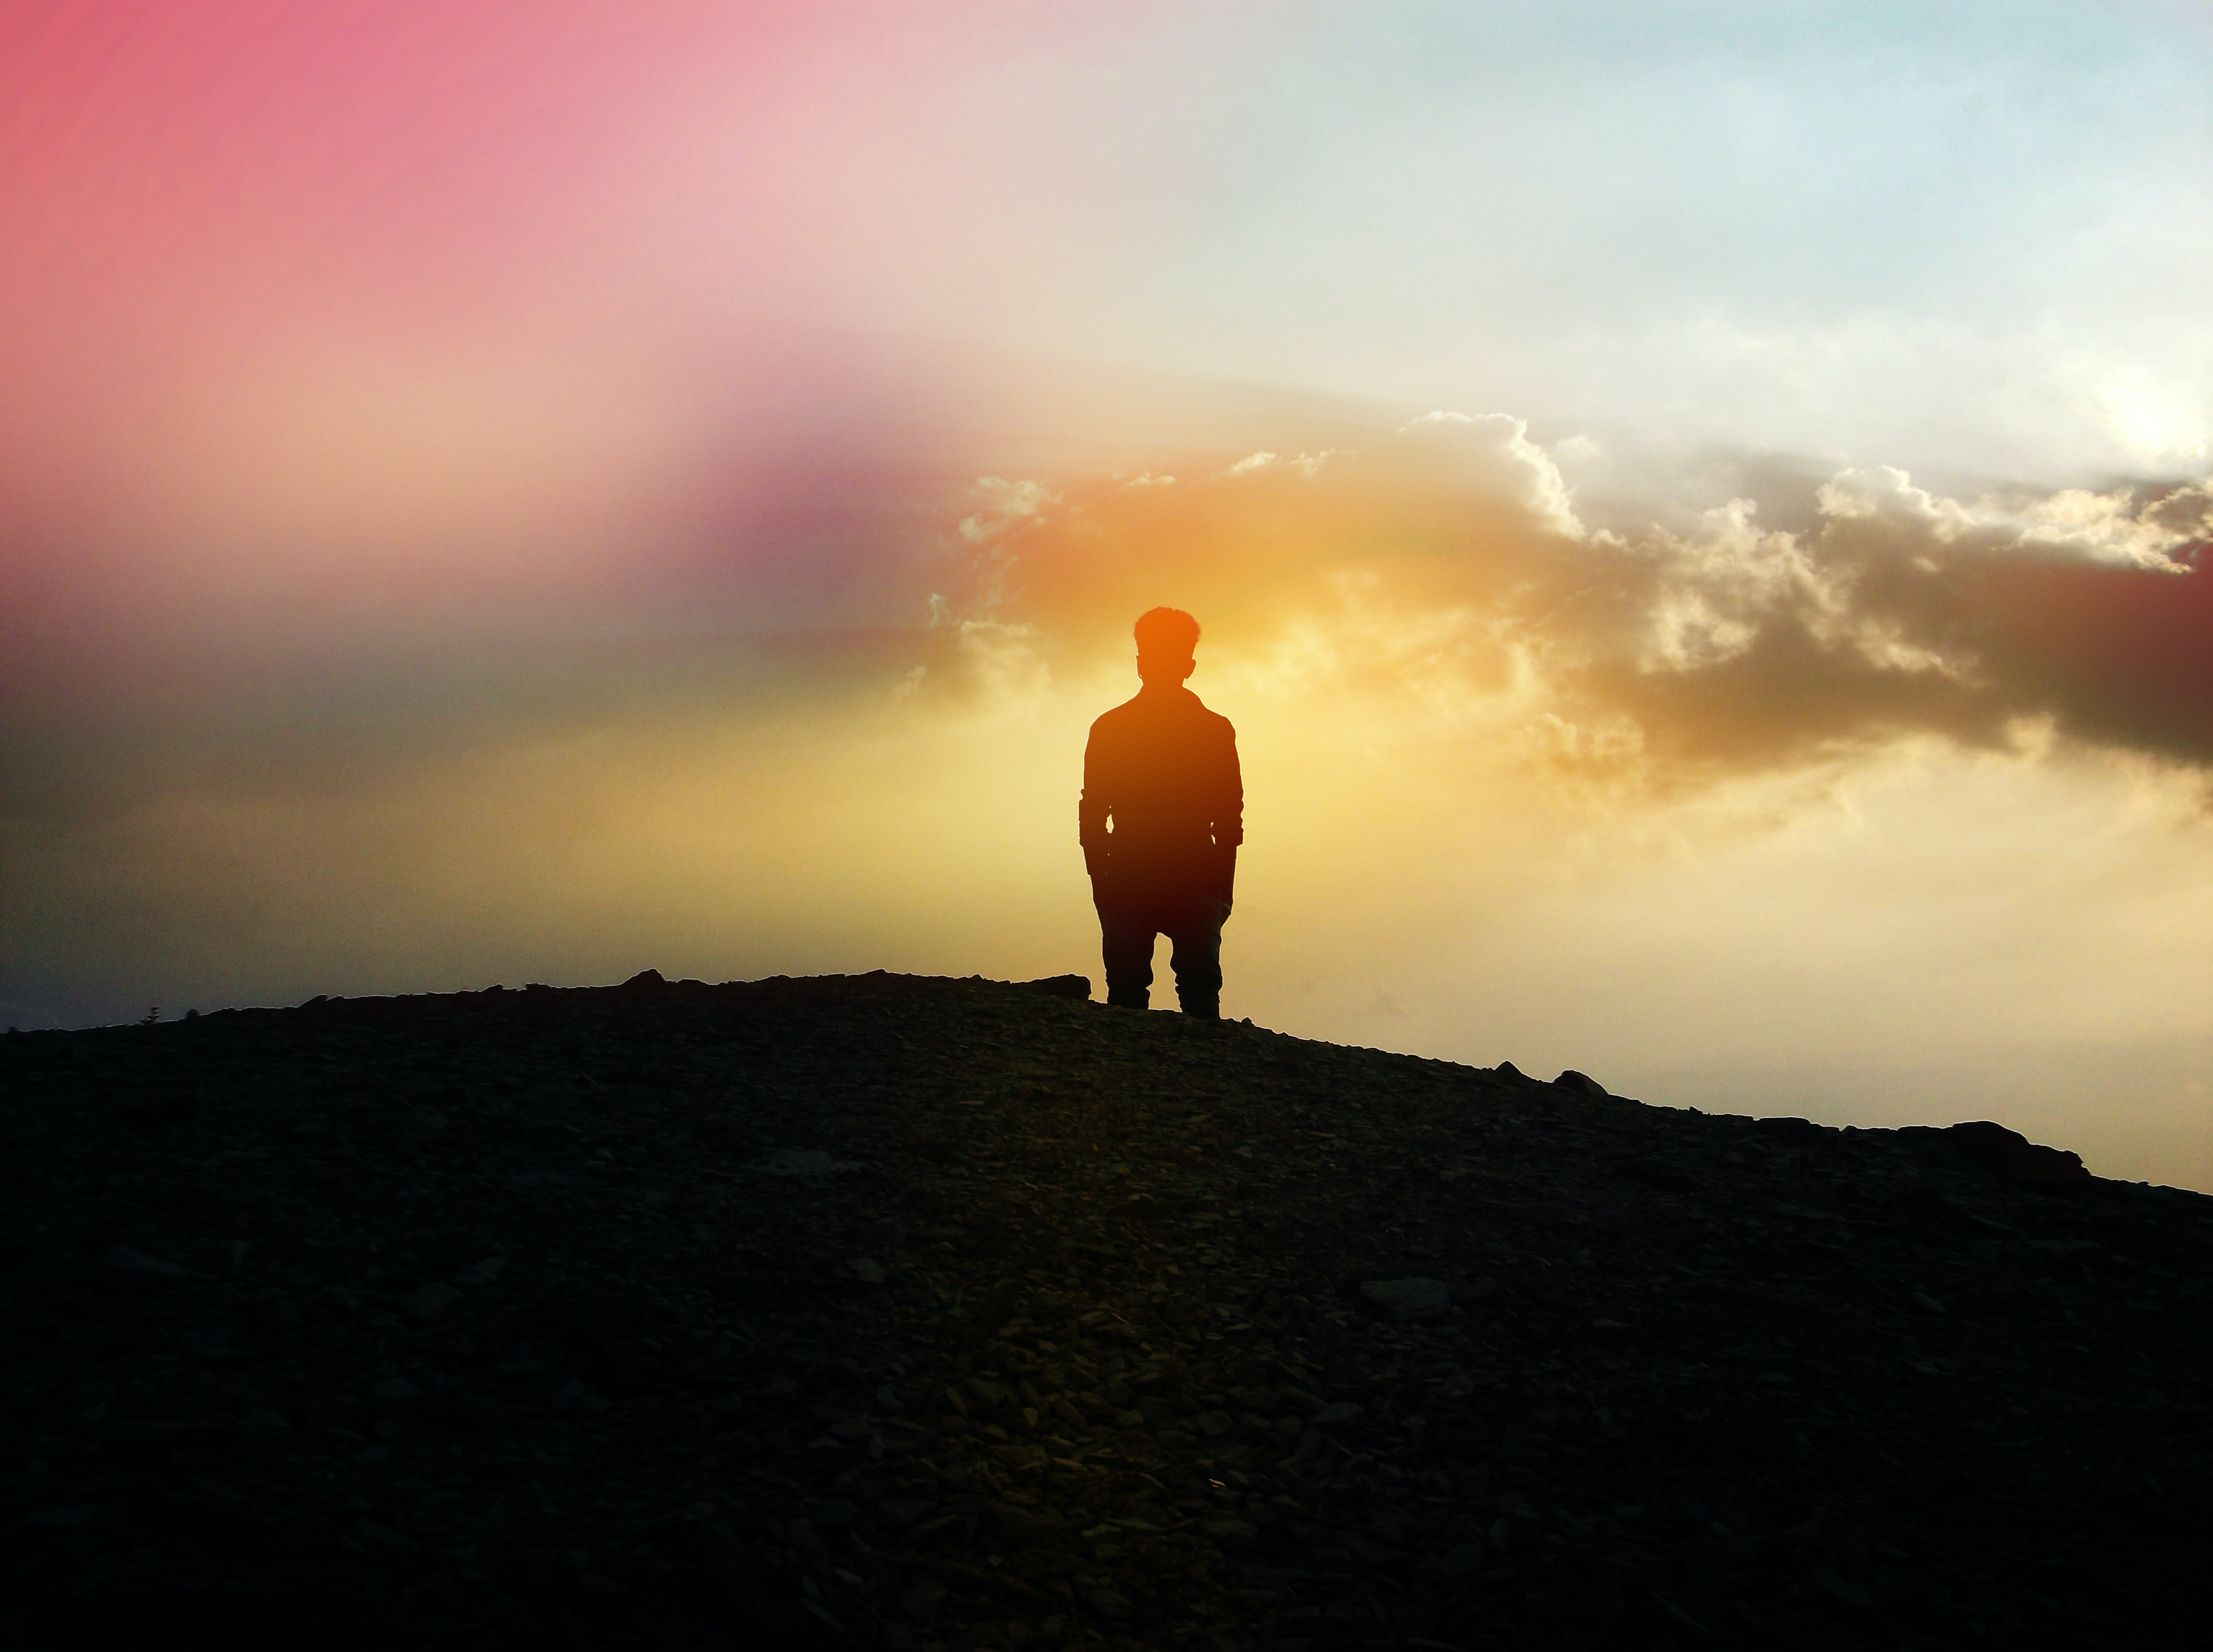 The silhouette of a man standing on a mountain looking out into the pink and yellow sky during sunset